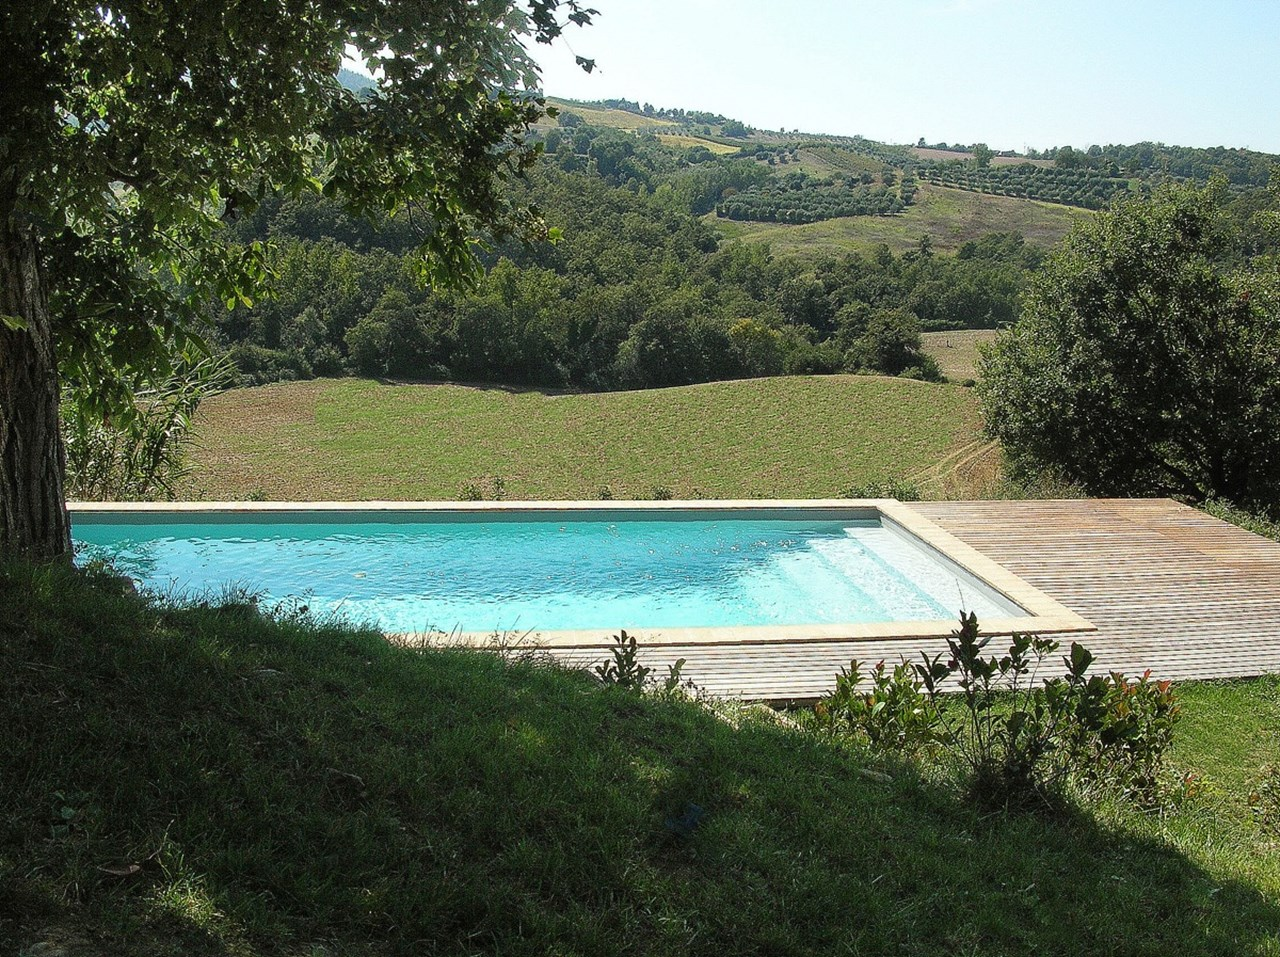 WIMCO Villas, HII BEA, Italy, Umbria, 4 bedrooms, 3.5 bathrooms